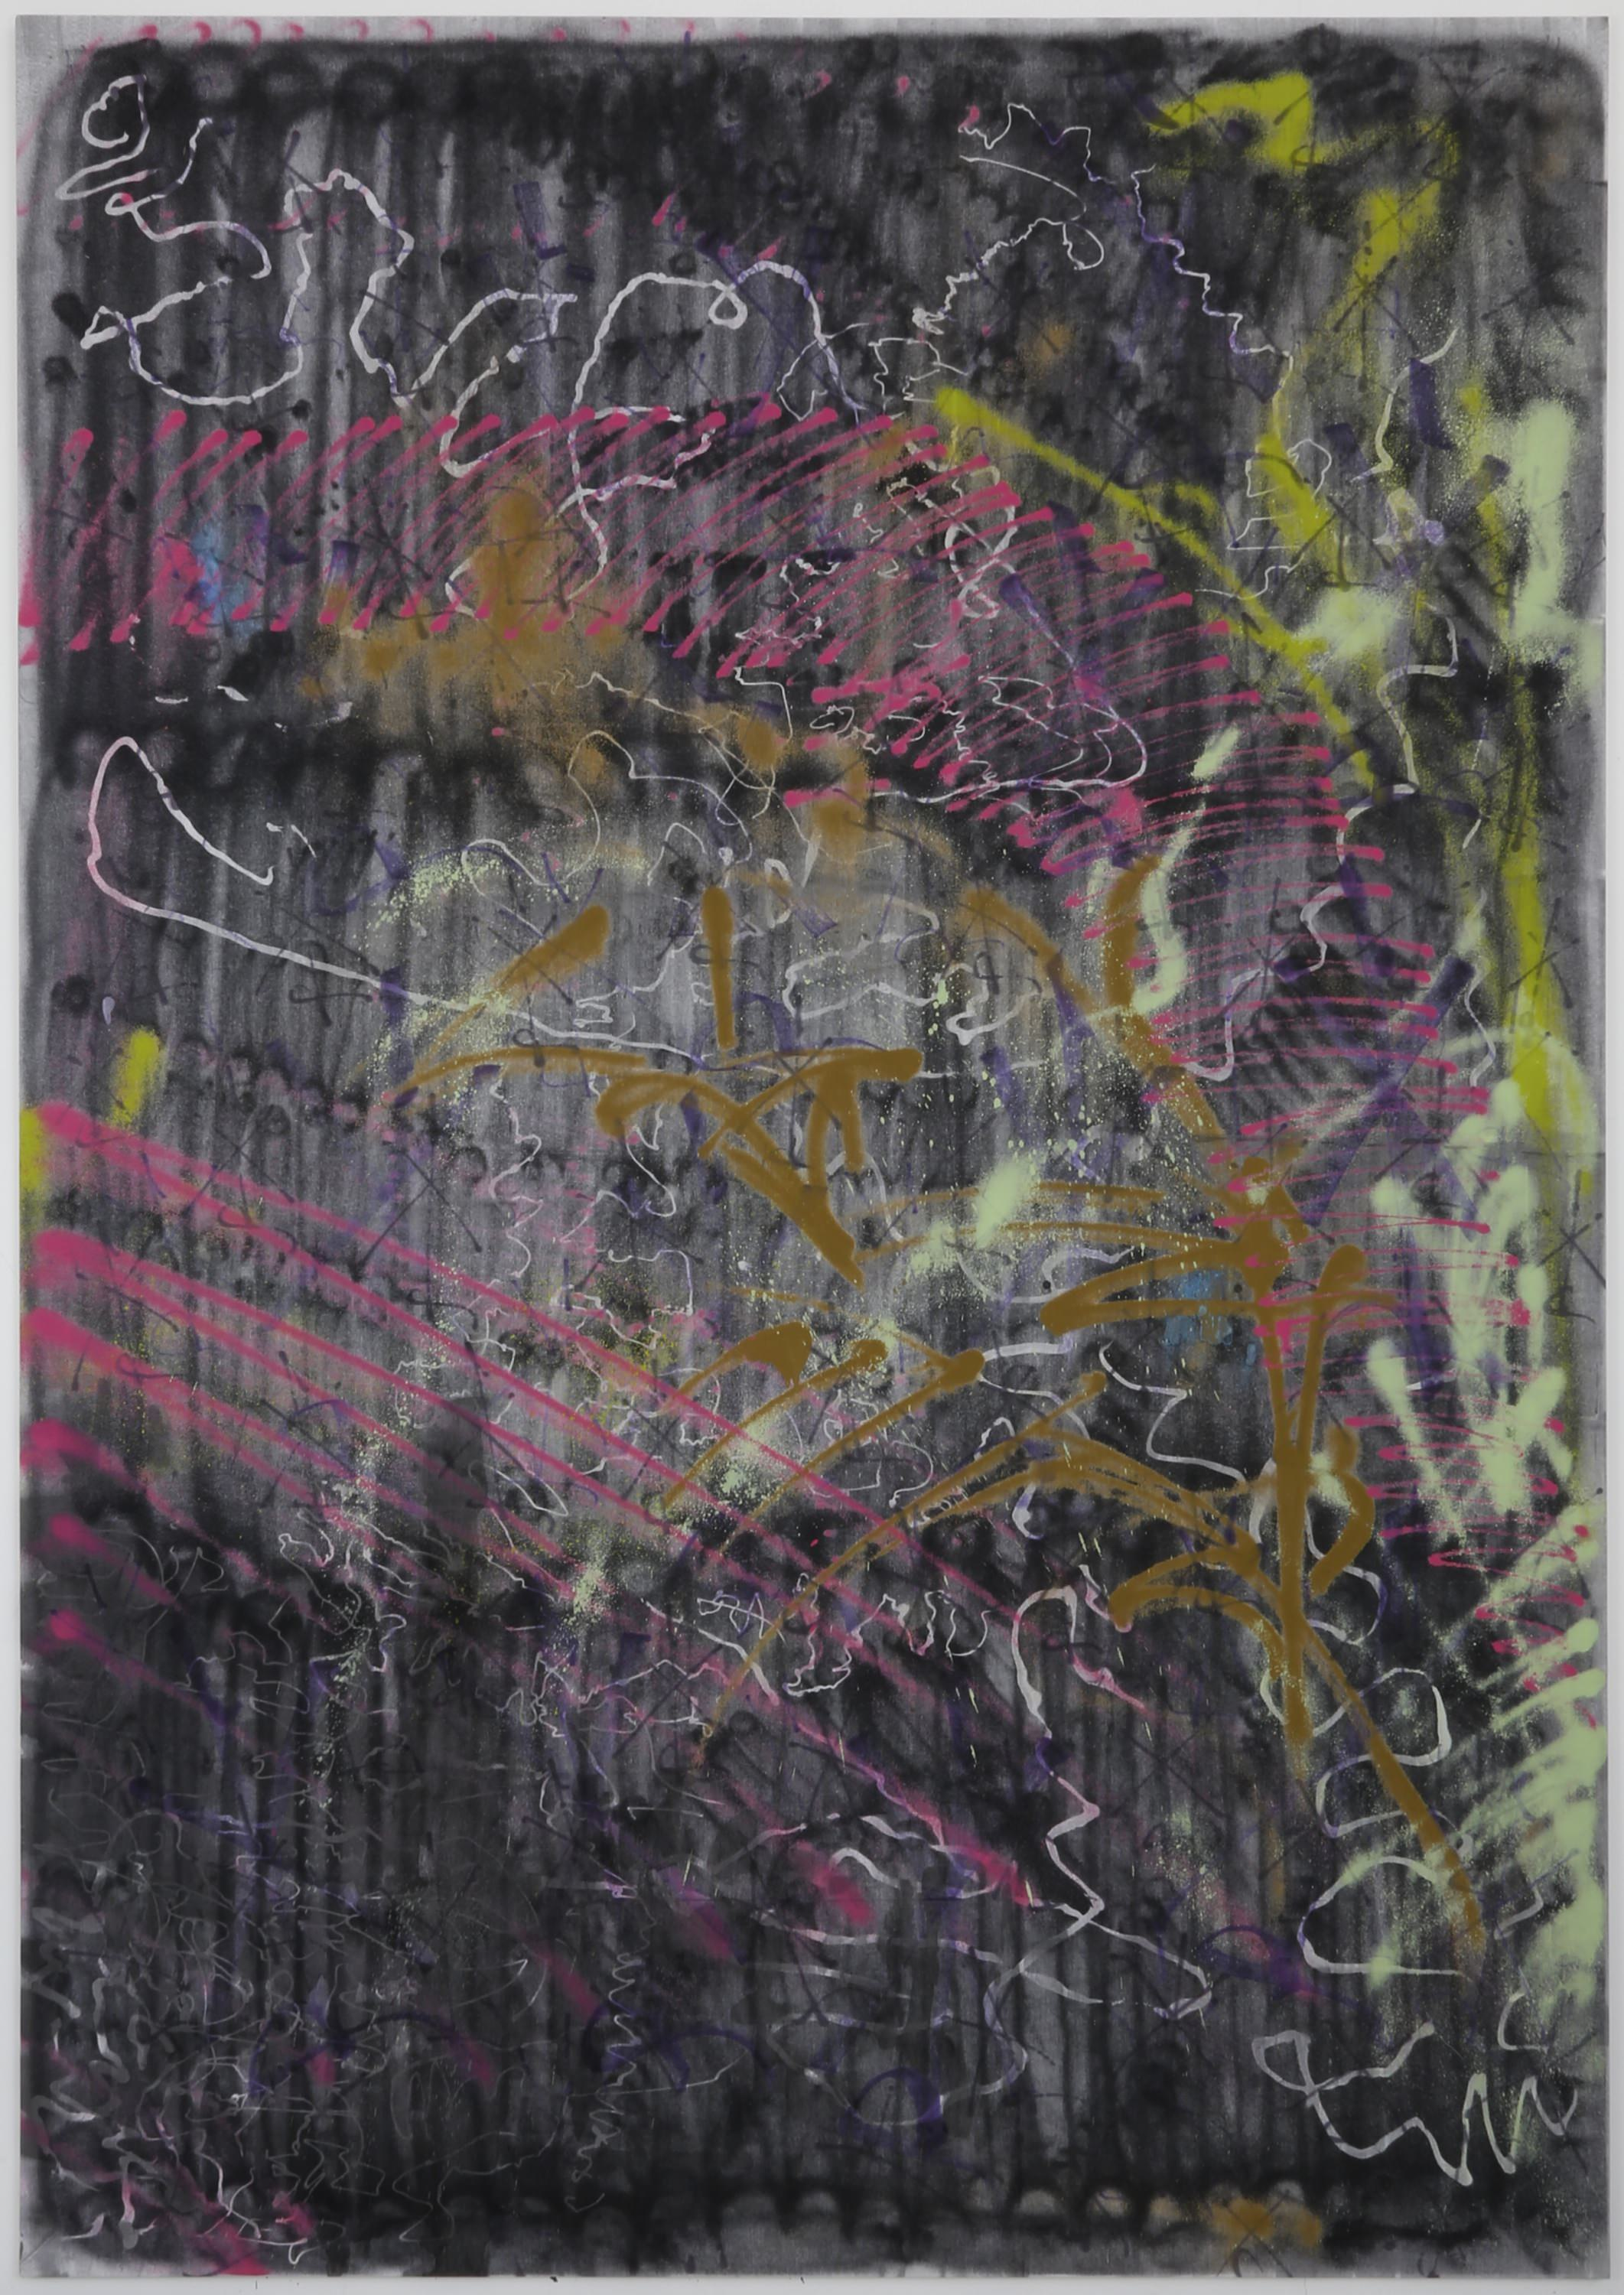 Ziggy Grudzinskas, Something In The Way, 2015, ink, oil & spray paint on polyester – 285 x 200 cm